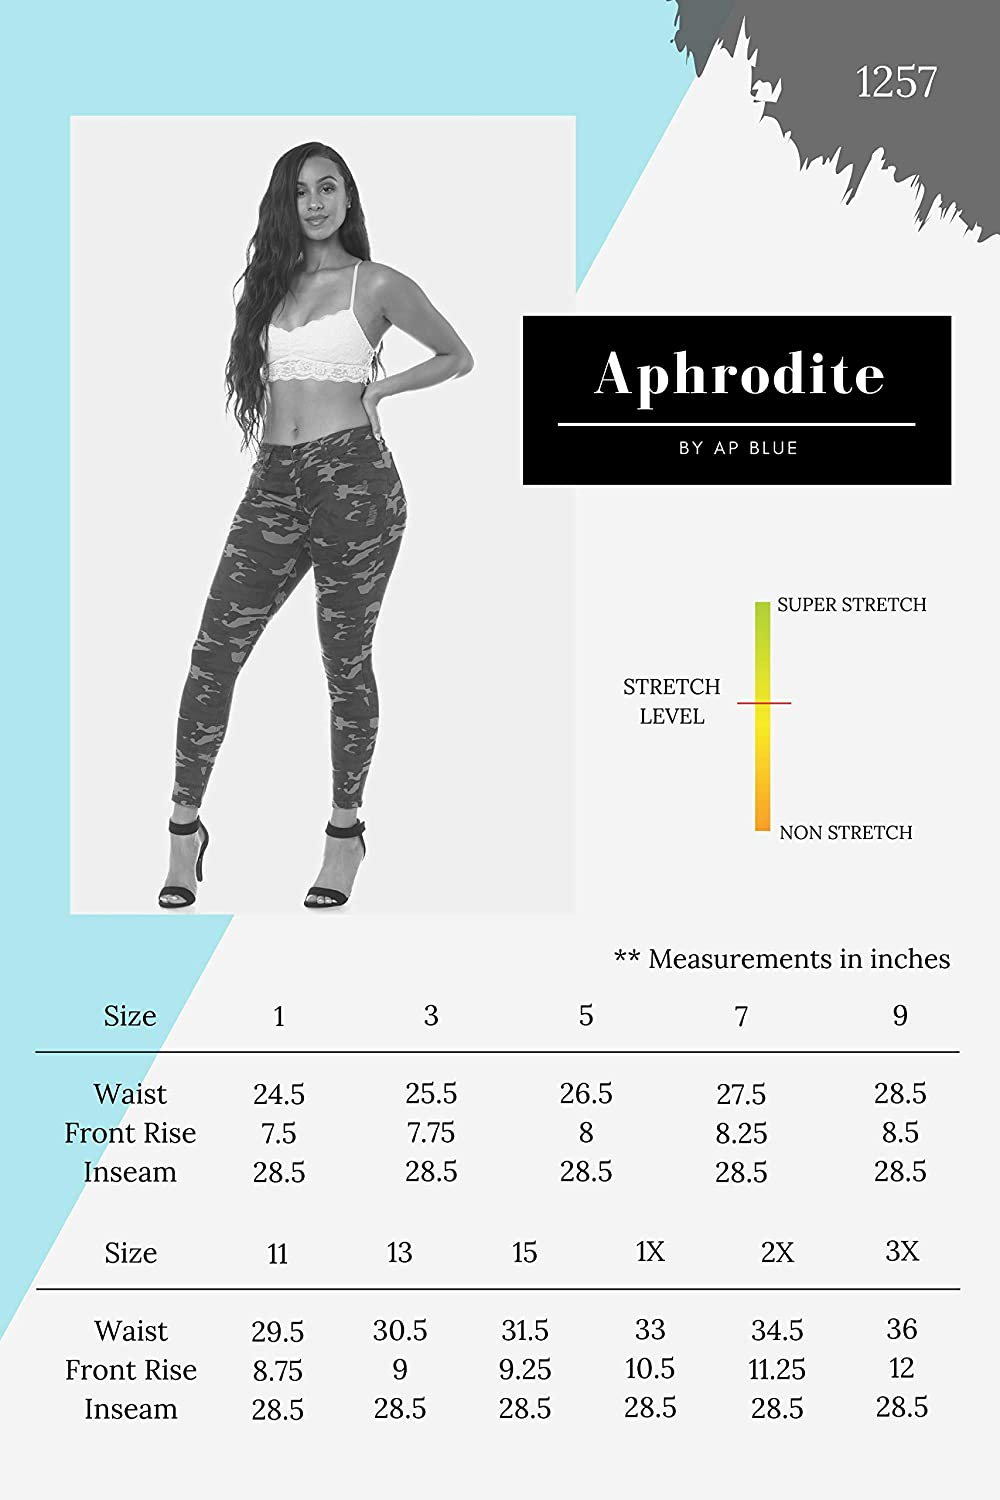 Aphrodite Mid Rise Jeans for Women - Casual Skinny Mid Waisted Denim Pants Jeans